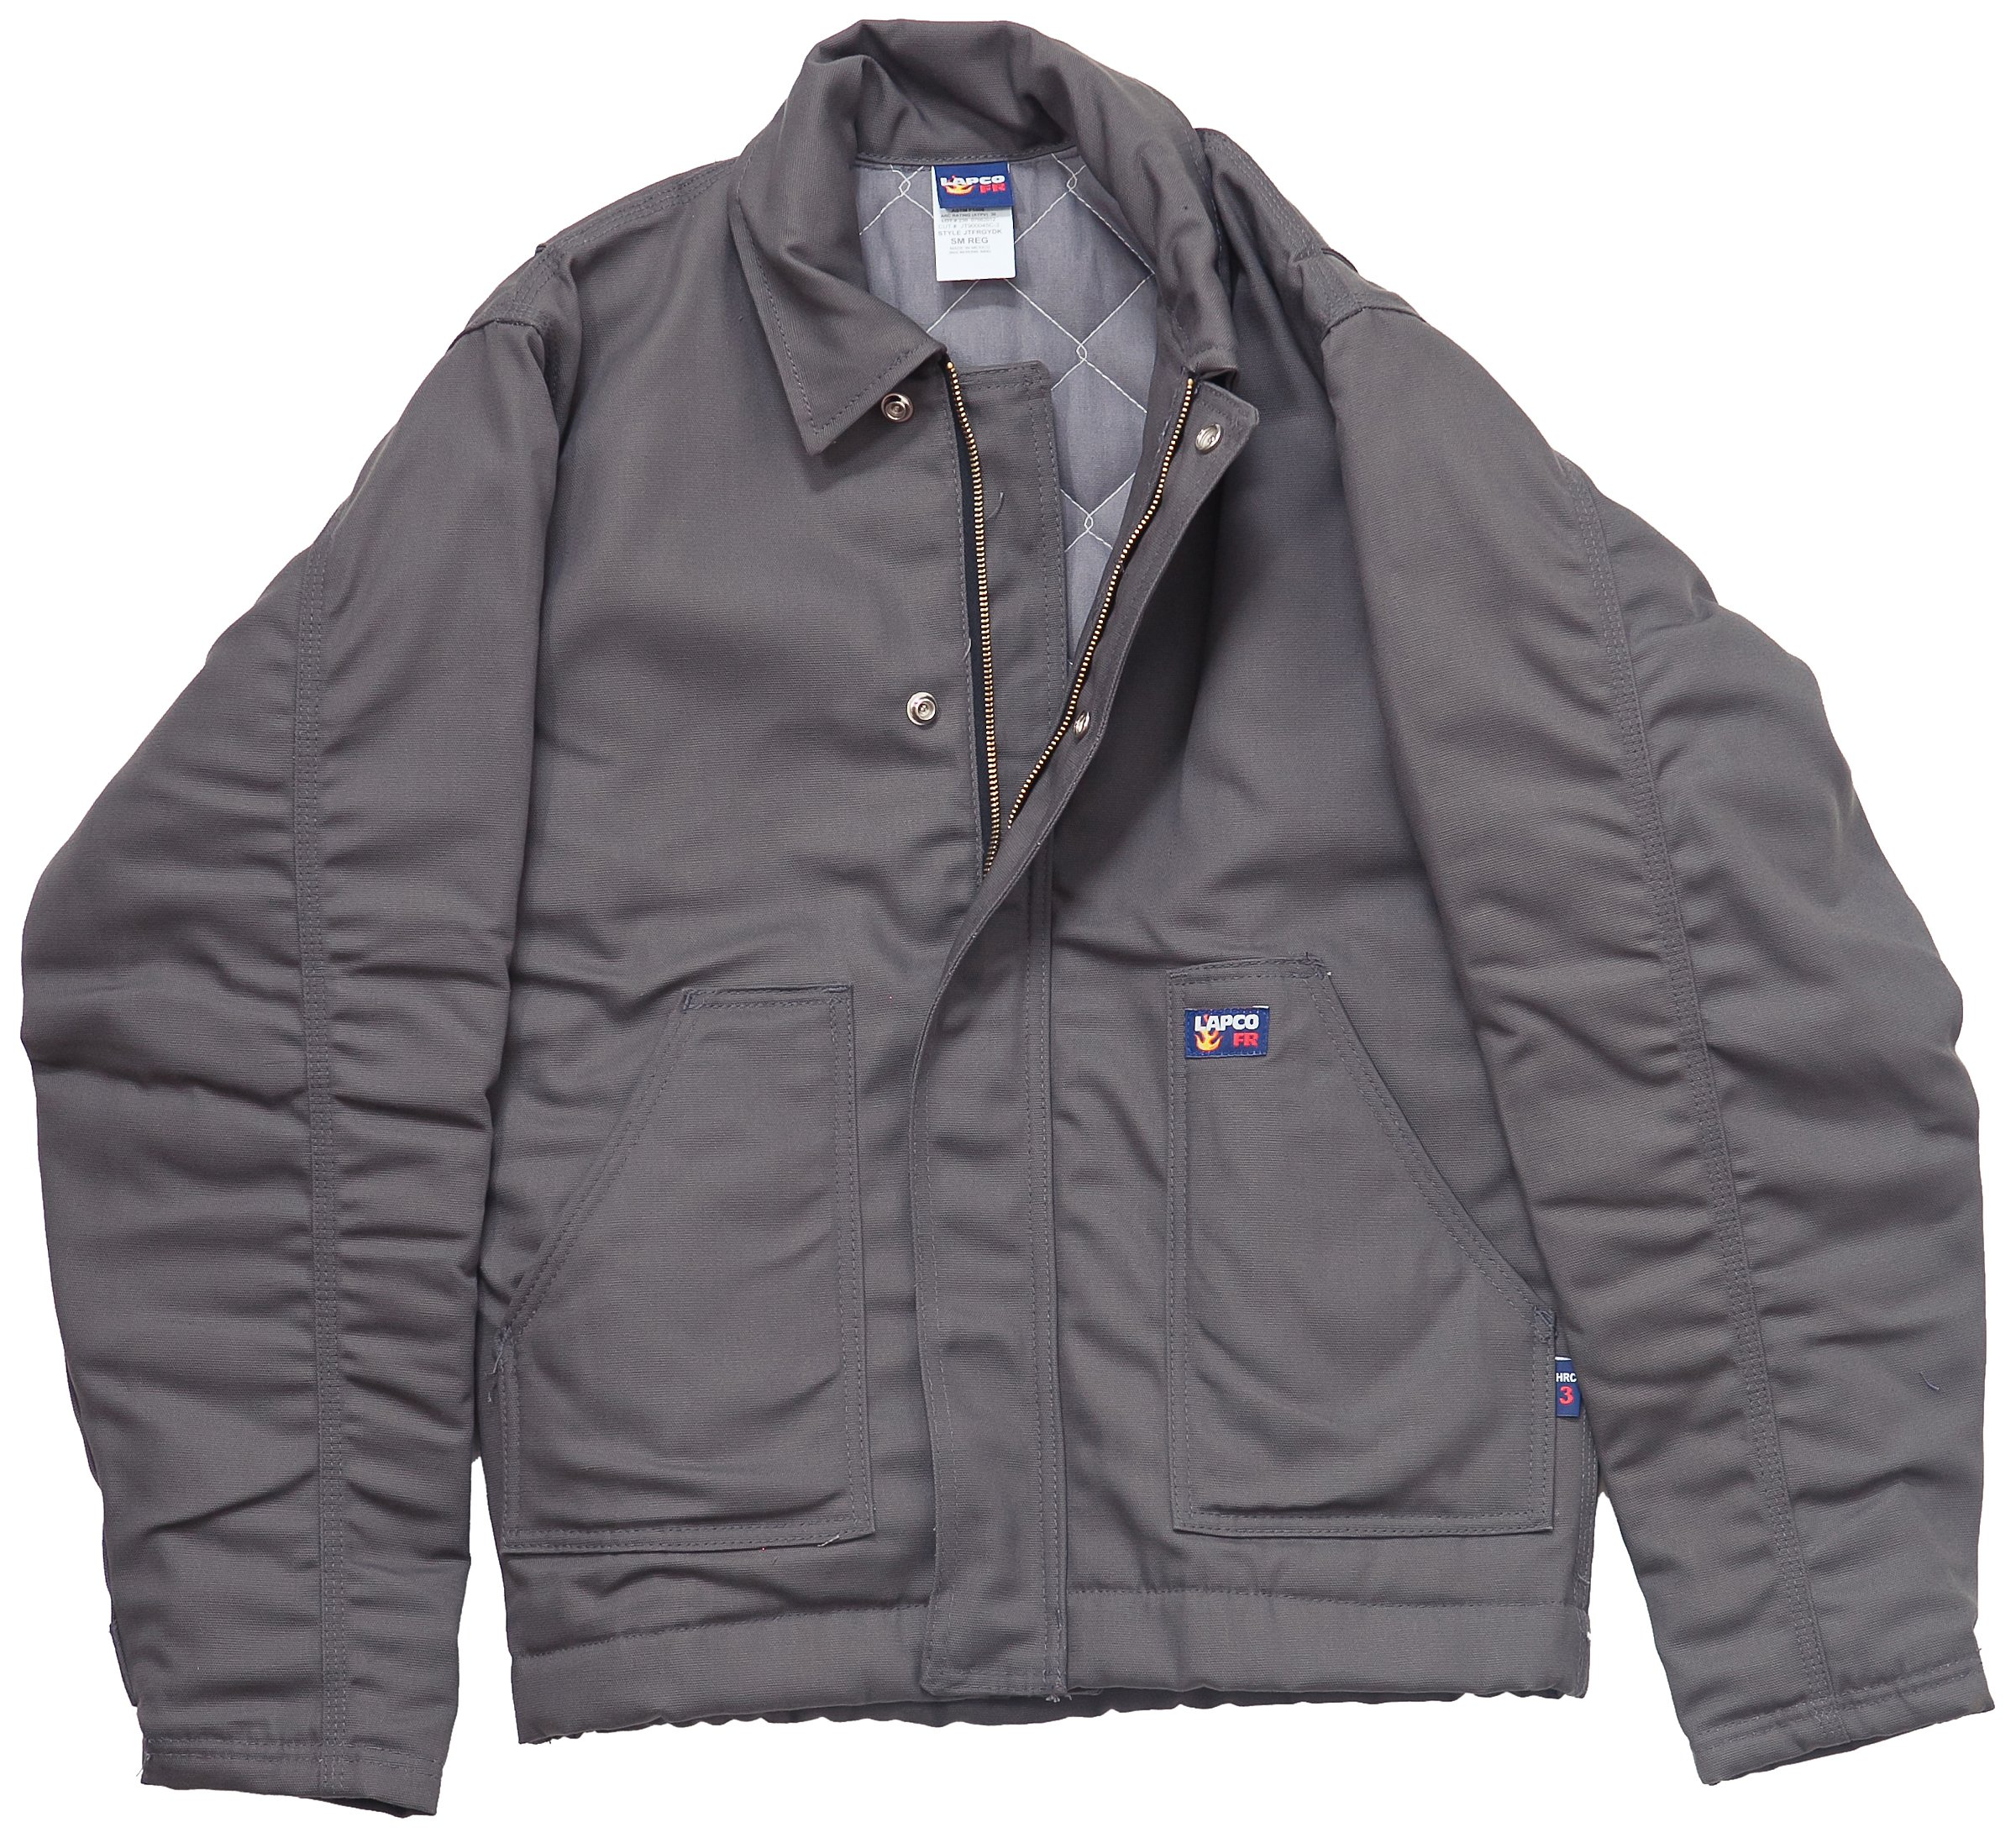 LAPCO JTFRGYDK-2XL RG 12-Ounce Flame Resistant Duck Insulated Jacket, Grey